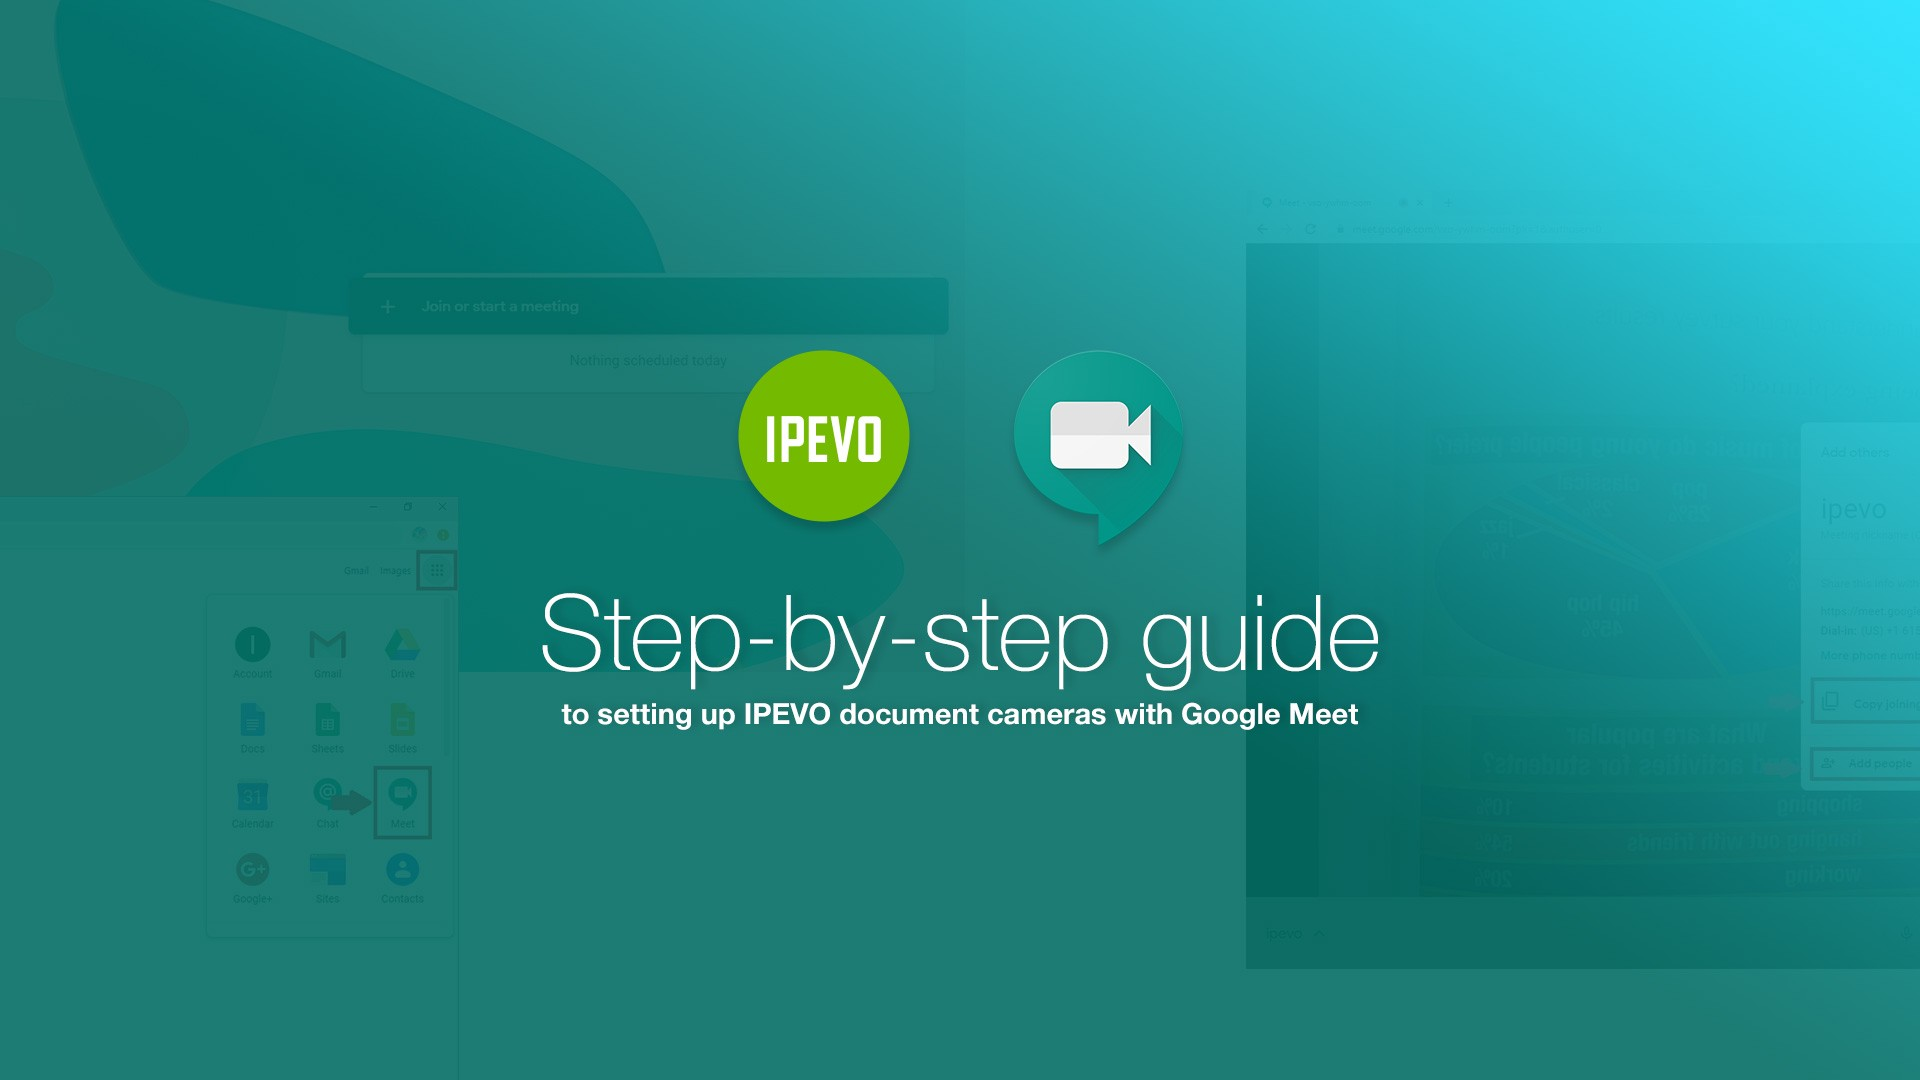 Step-by-step guide to setting up IPEVO document cameras with Google Meet